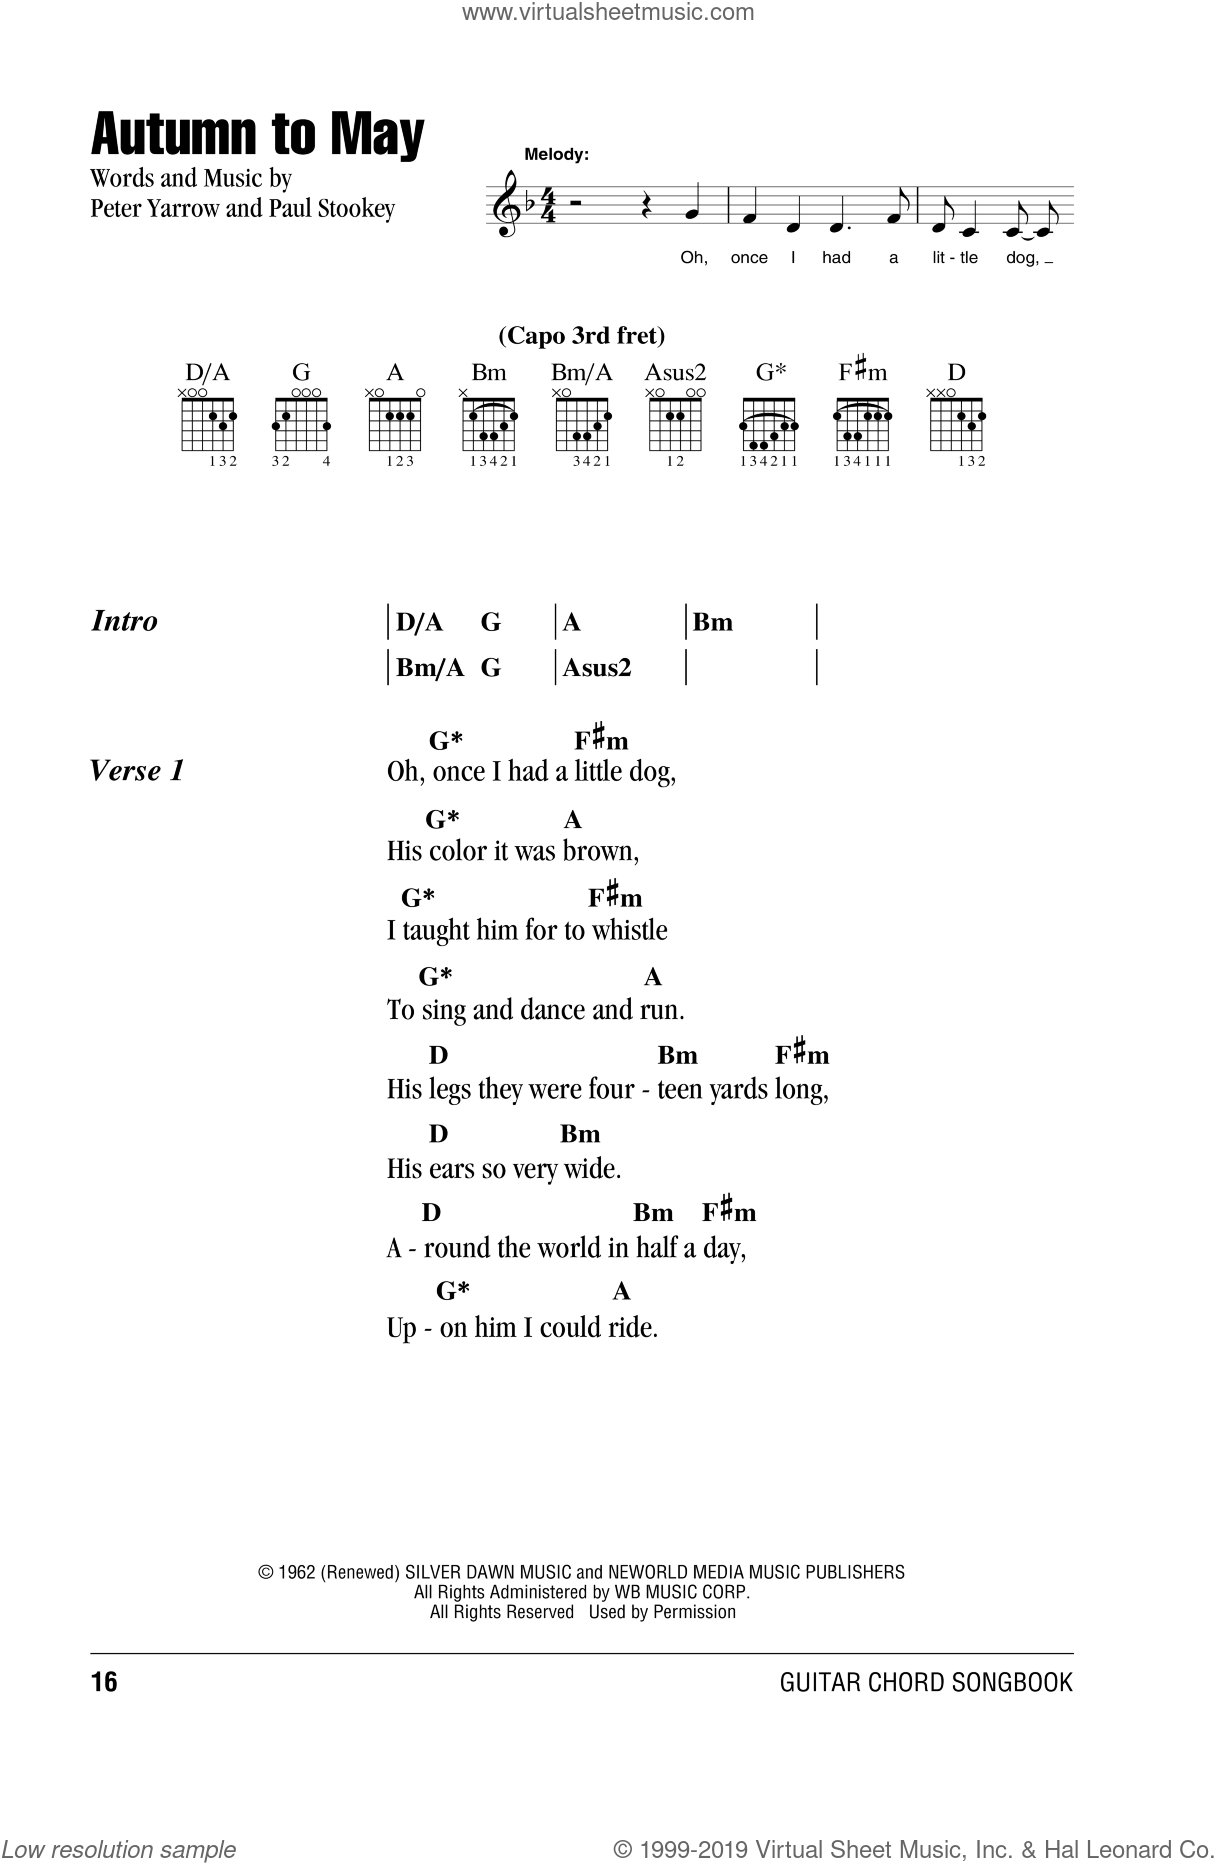 Autumn To May sheet music for guitar (chords) by Peter, Paul & Mary, intermediate skill level